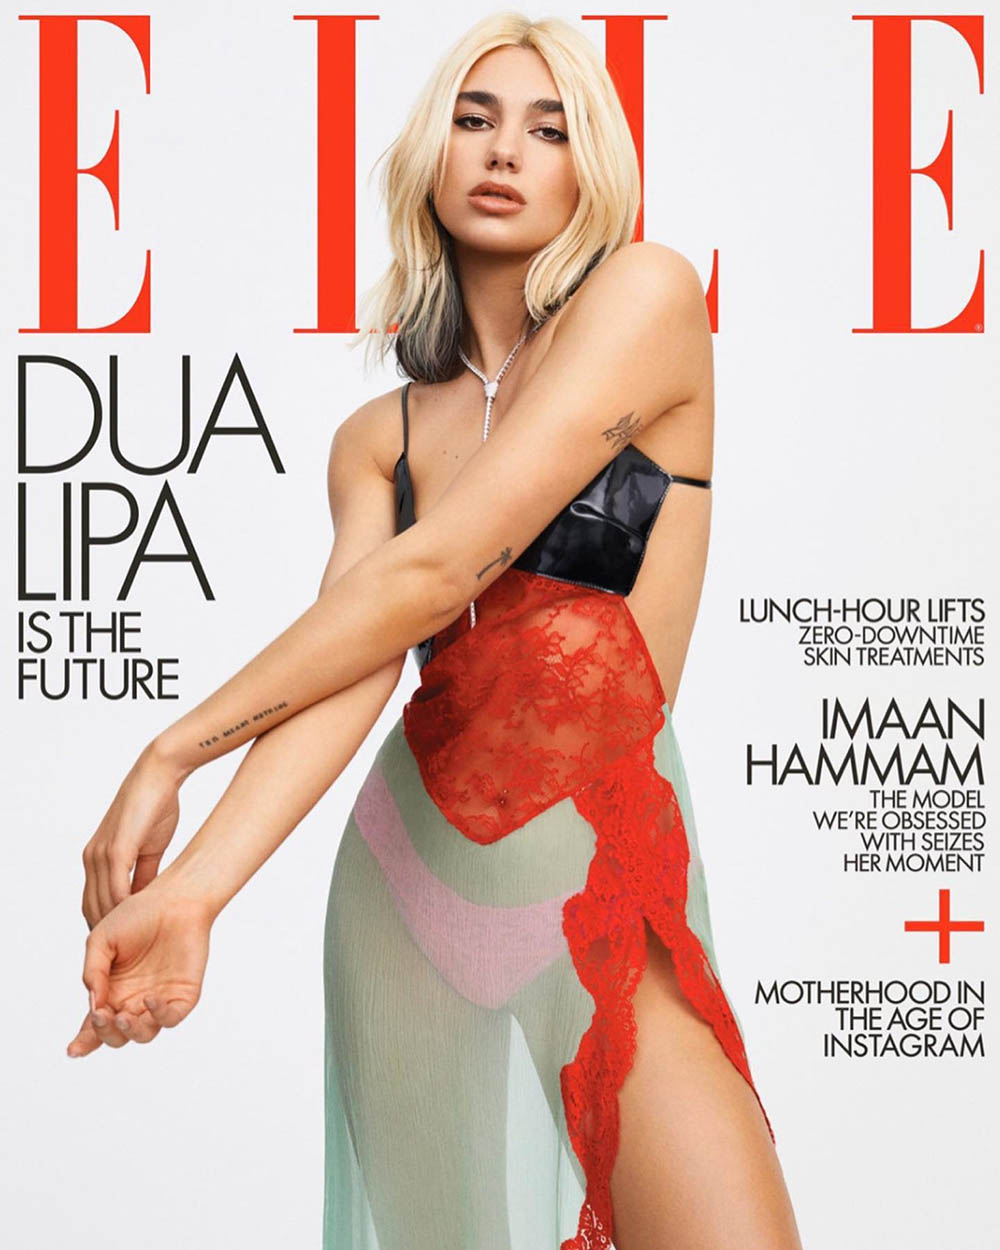 Dua Lipa covers Elle US May 2020 by Zoey Grossman